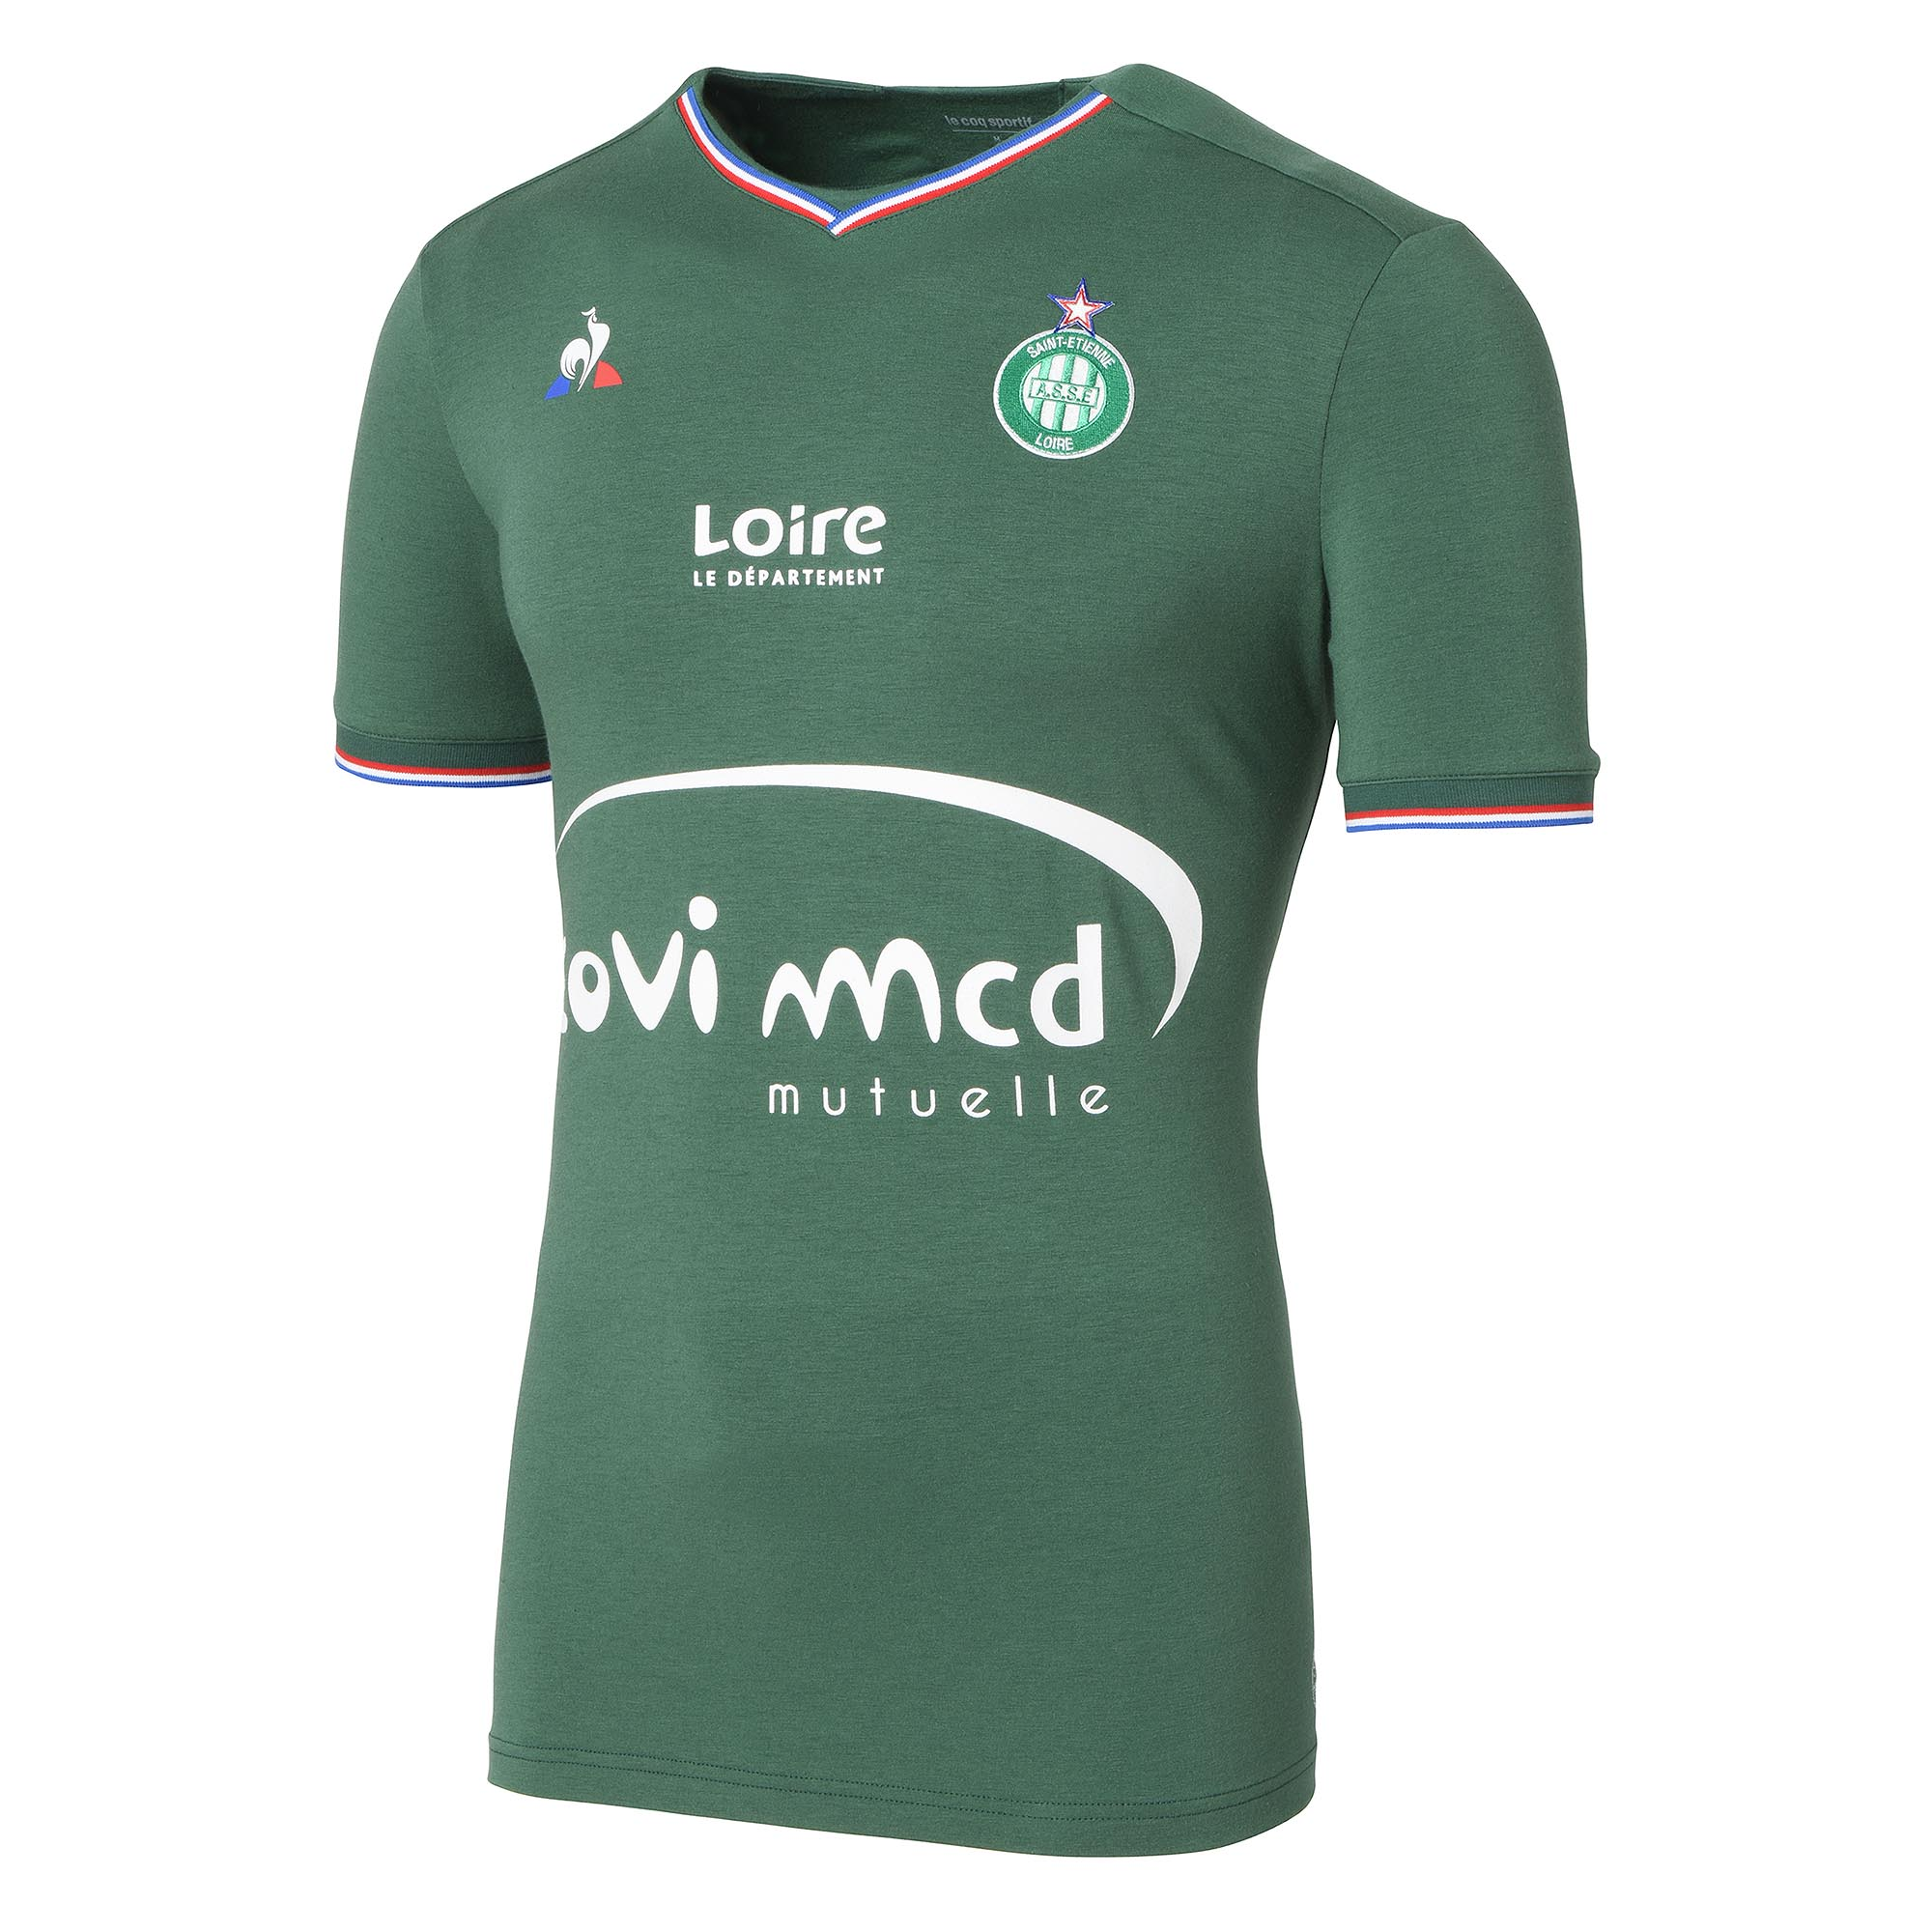 http://www.footballshirtculture.com/images/stories/as-saint-etienne-2017-2018-le-coq-sportif-home-kit/as_saint_etienne_17_18_le_coq_sportif_home_kit_shirt_a.jpg